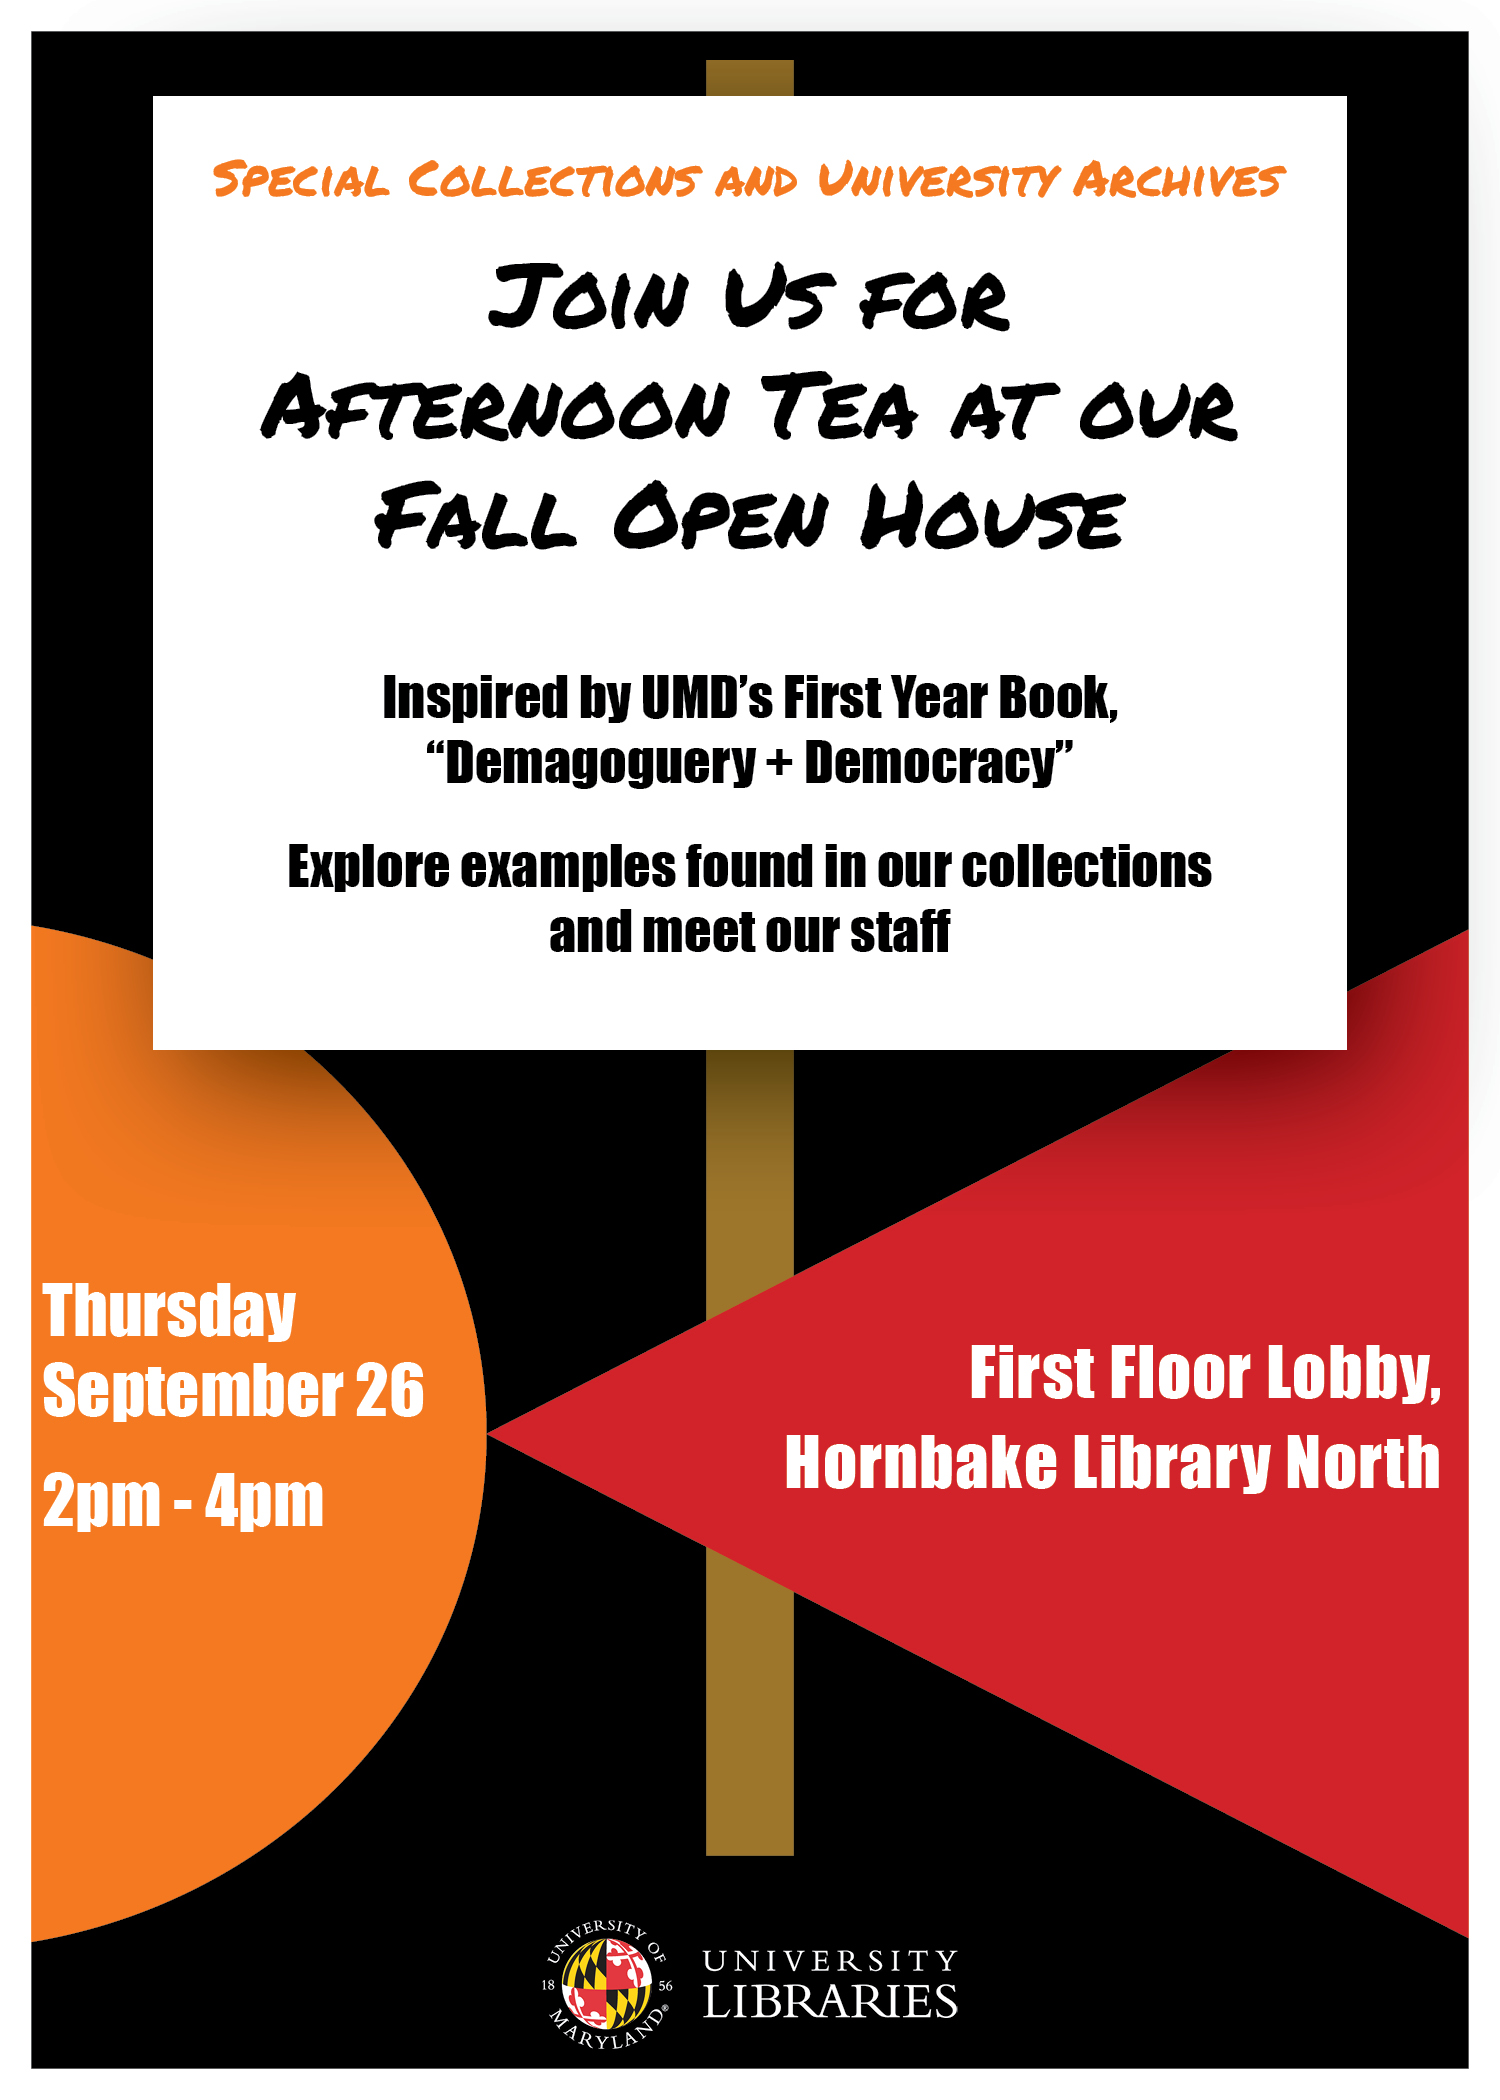 Afternoon Tea and Open House at Special Collections and University Archives